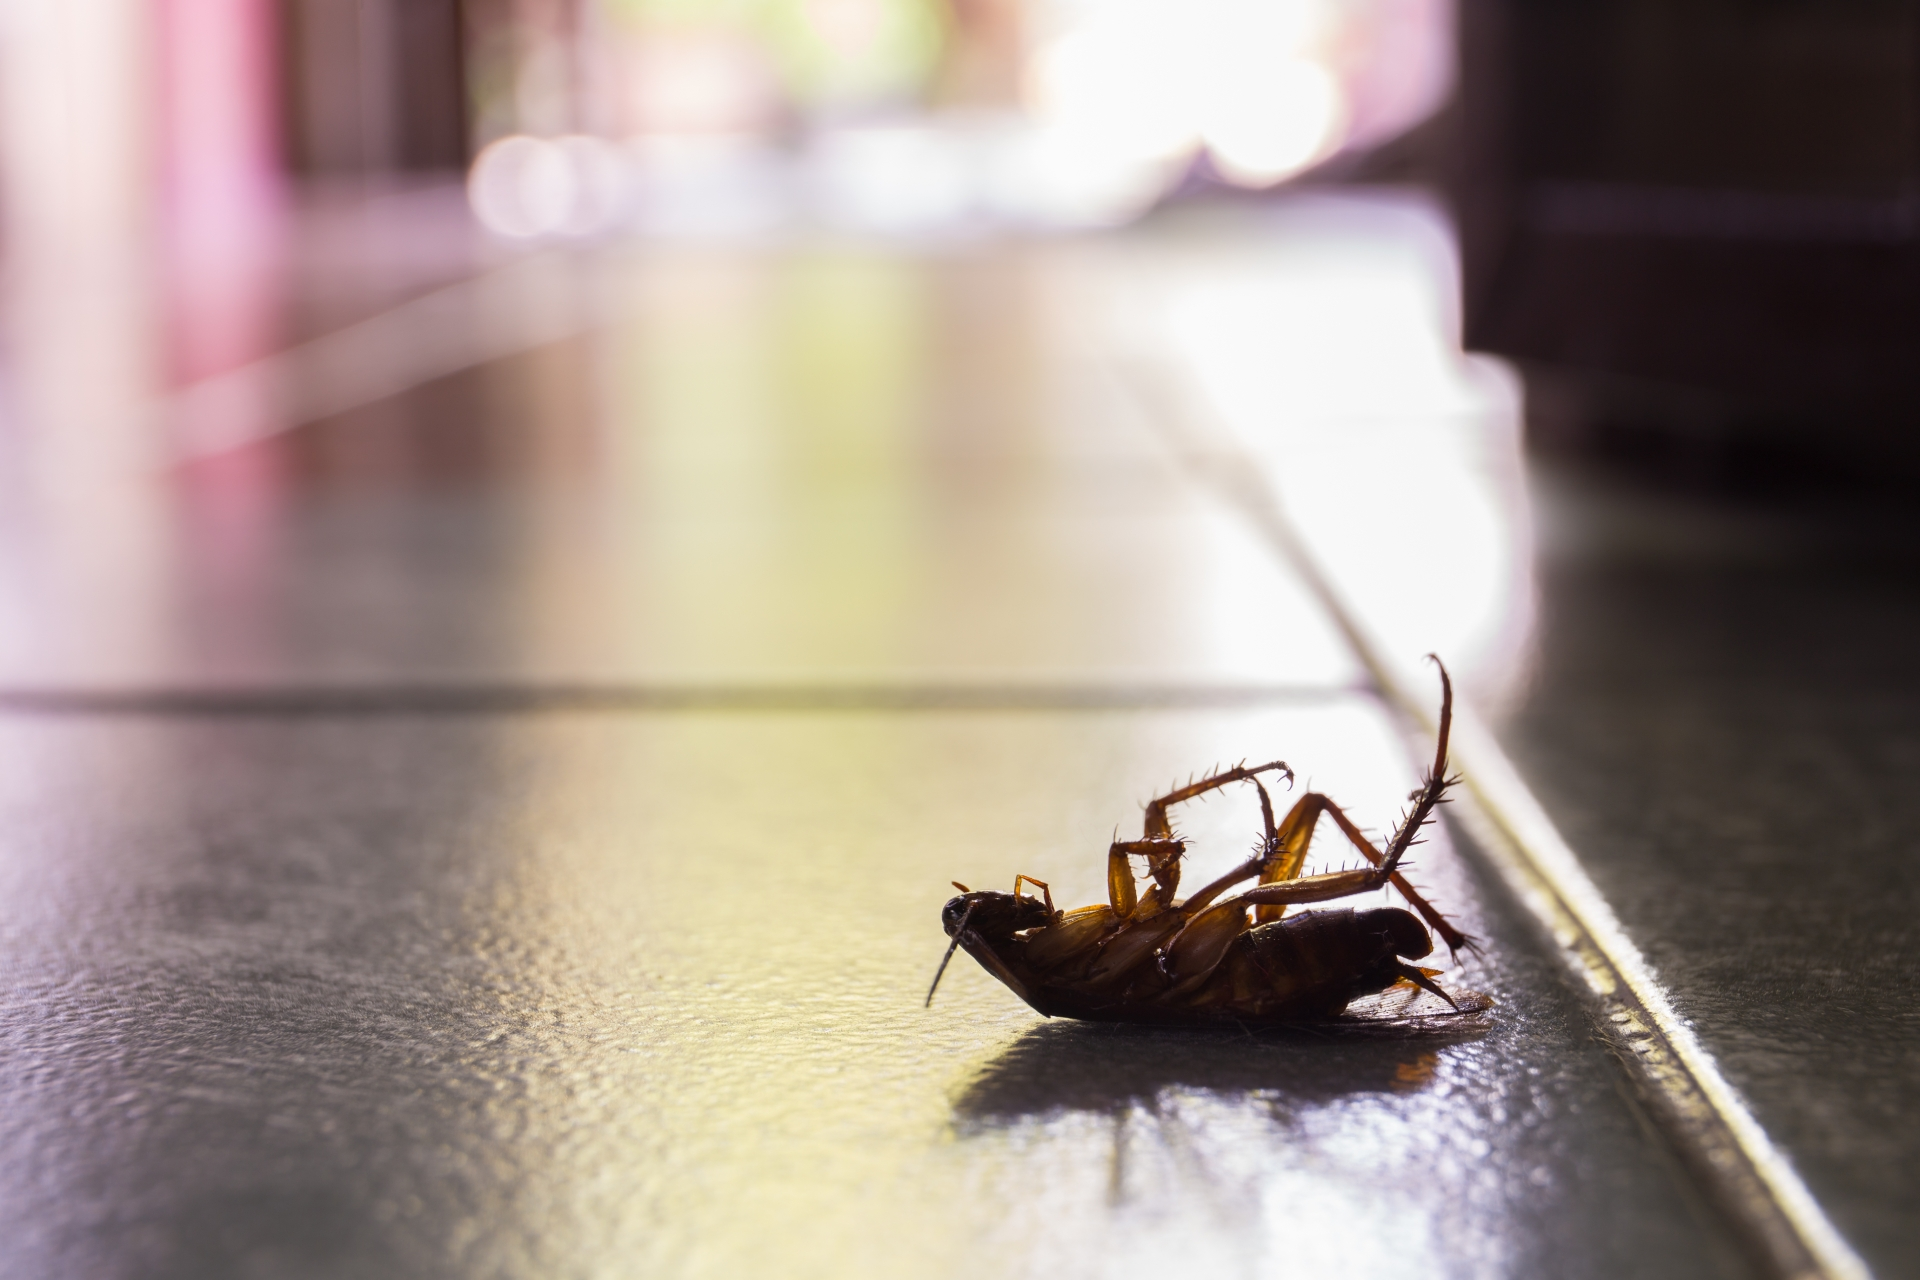 Cockroach Control, Pest Control in North Cheam, Stonecot Hill, SM3. Call Now 020 8166 9746